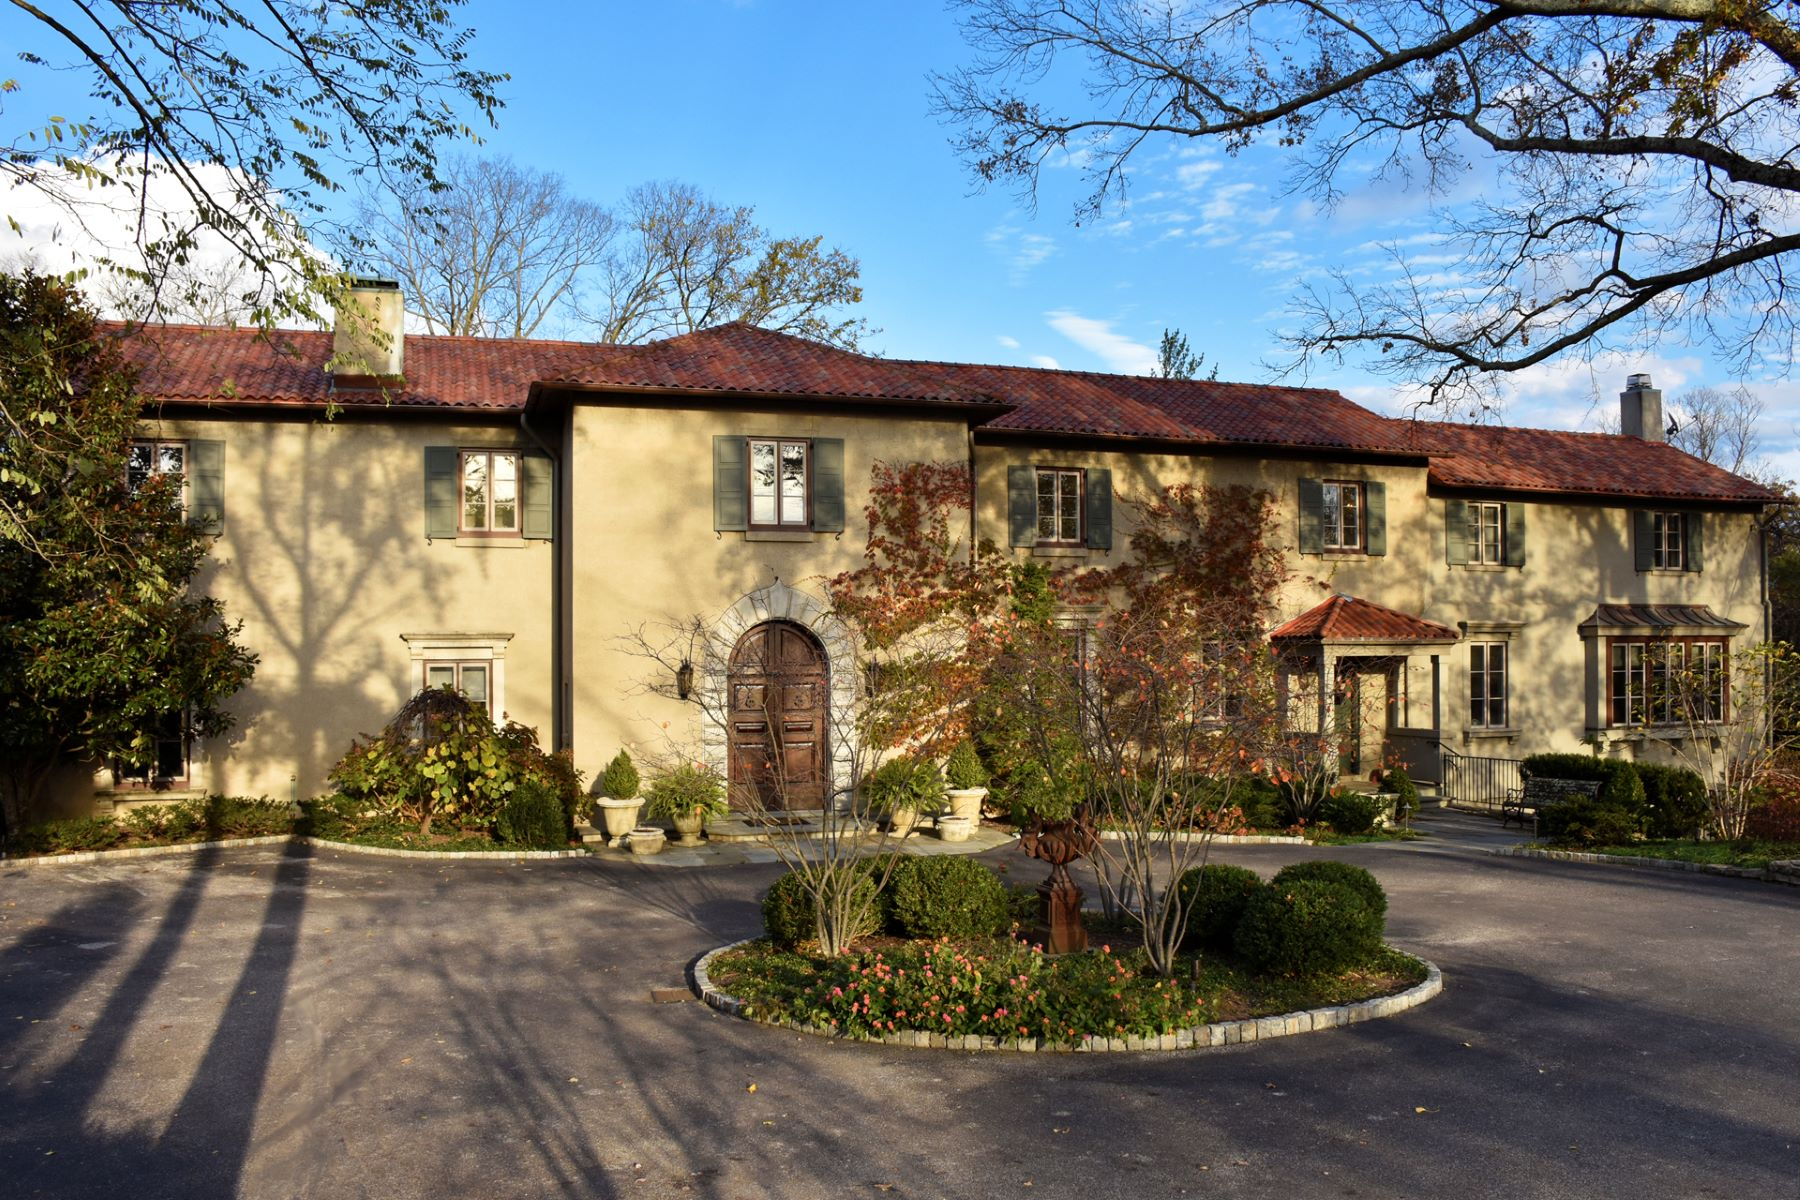 Single Family Home for Sale at Stunning Tuscan Style Villa 2560 Grandin Road Cincinnati, Ohio 45208 United States